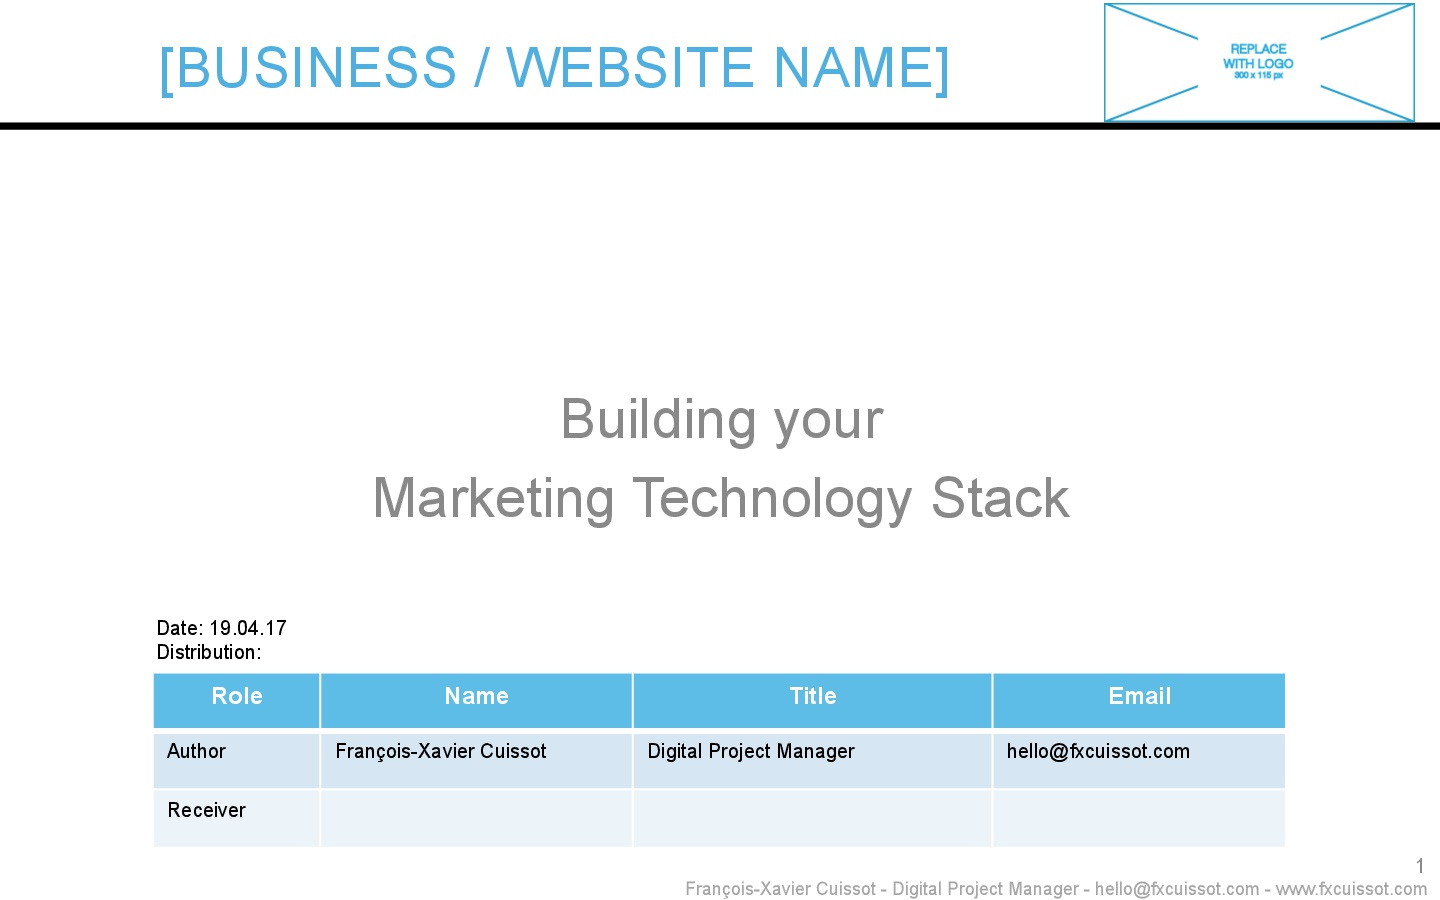 Building Marketing Technology